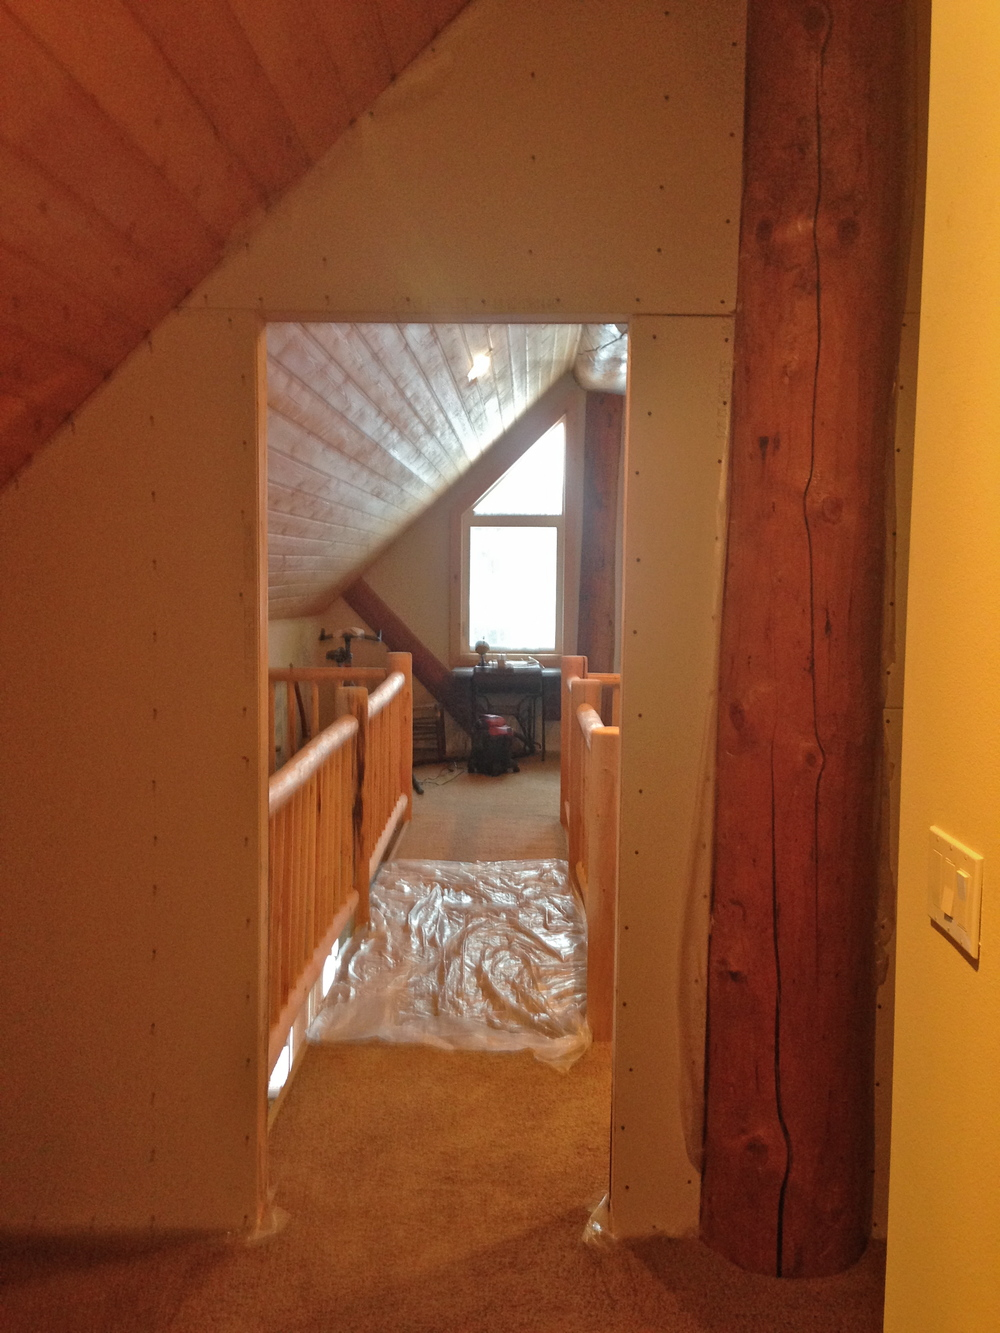 Looking out from my bedroom through the new doorway.